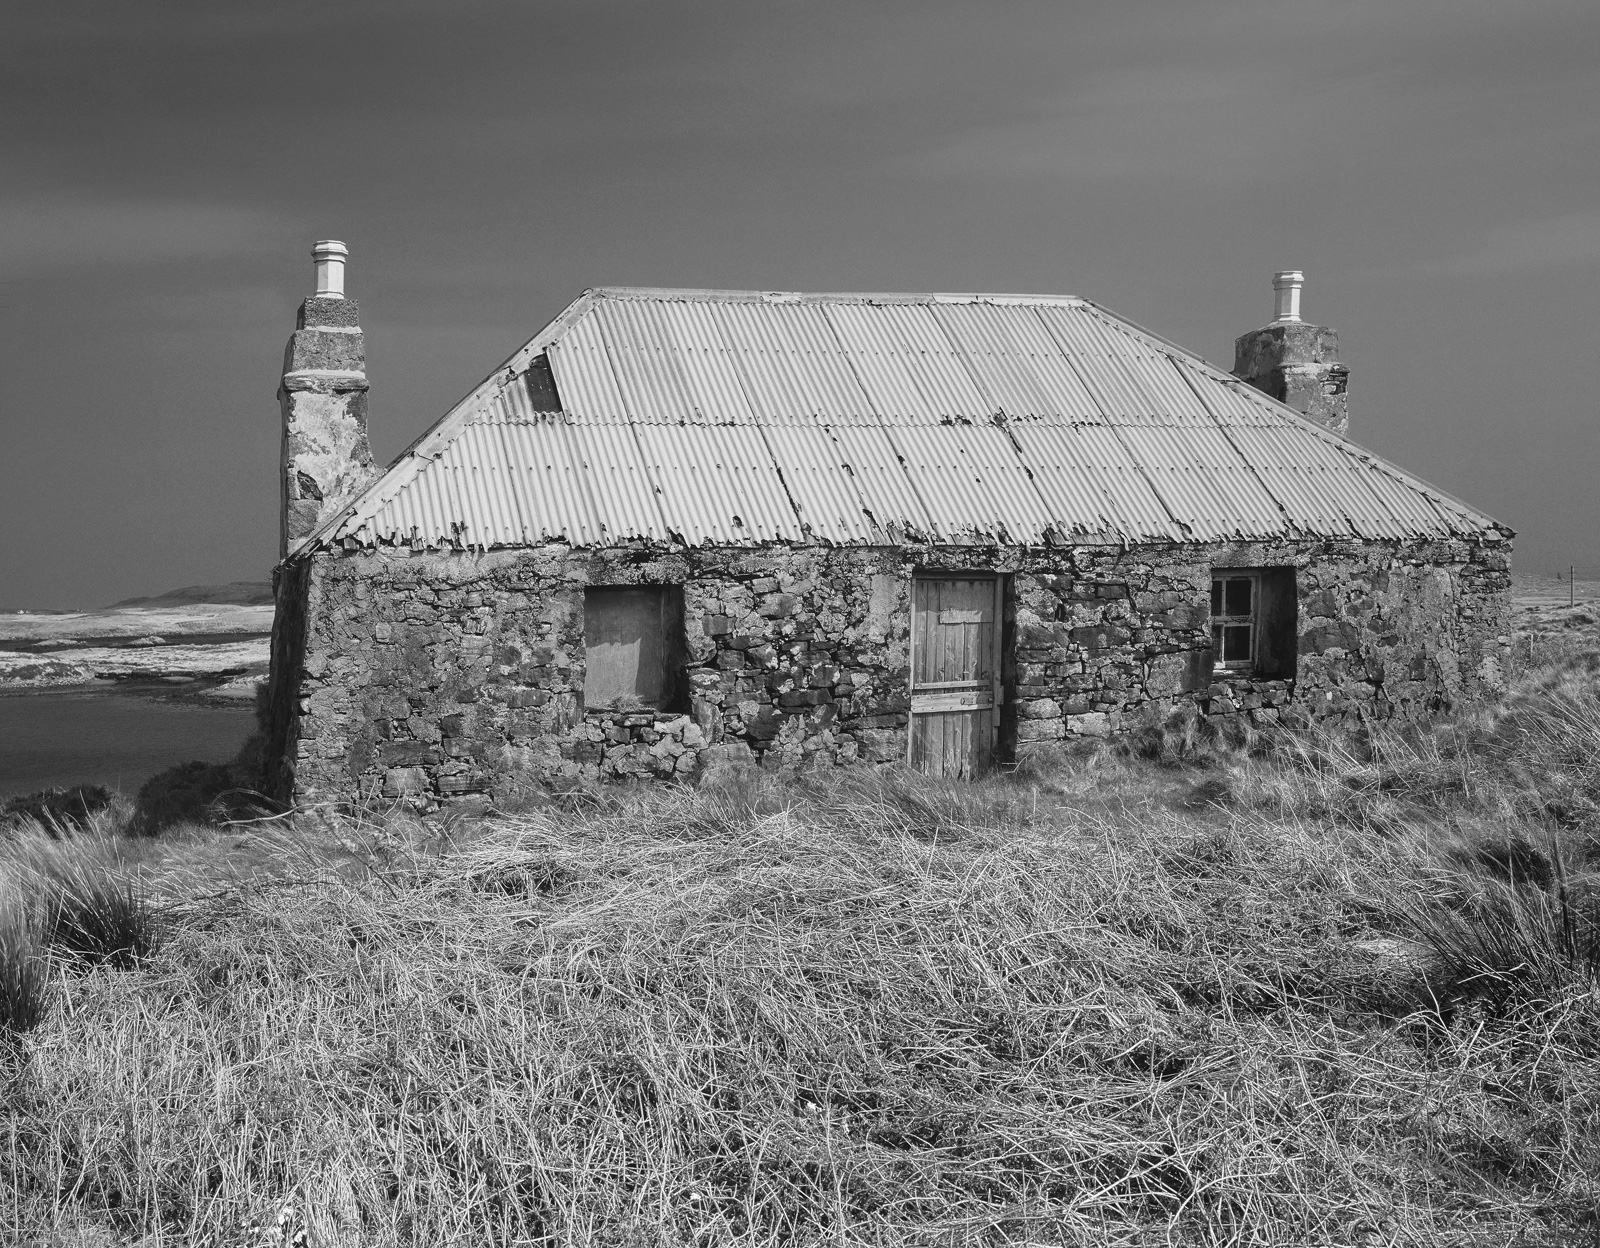 This old bothy abandoned close to the port town of Lochmaddy in North Uist had a glorious rusty red tin roof a stone facade and...